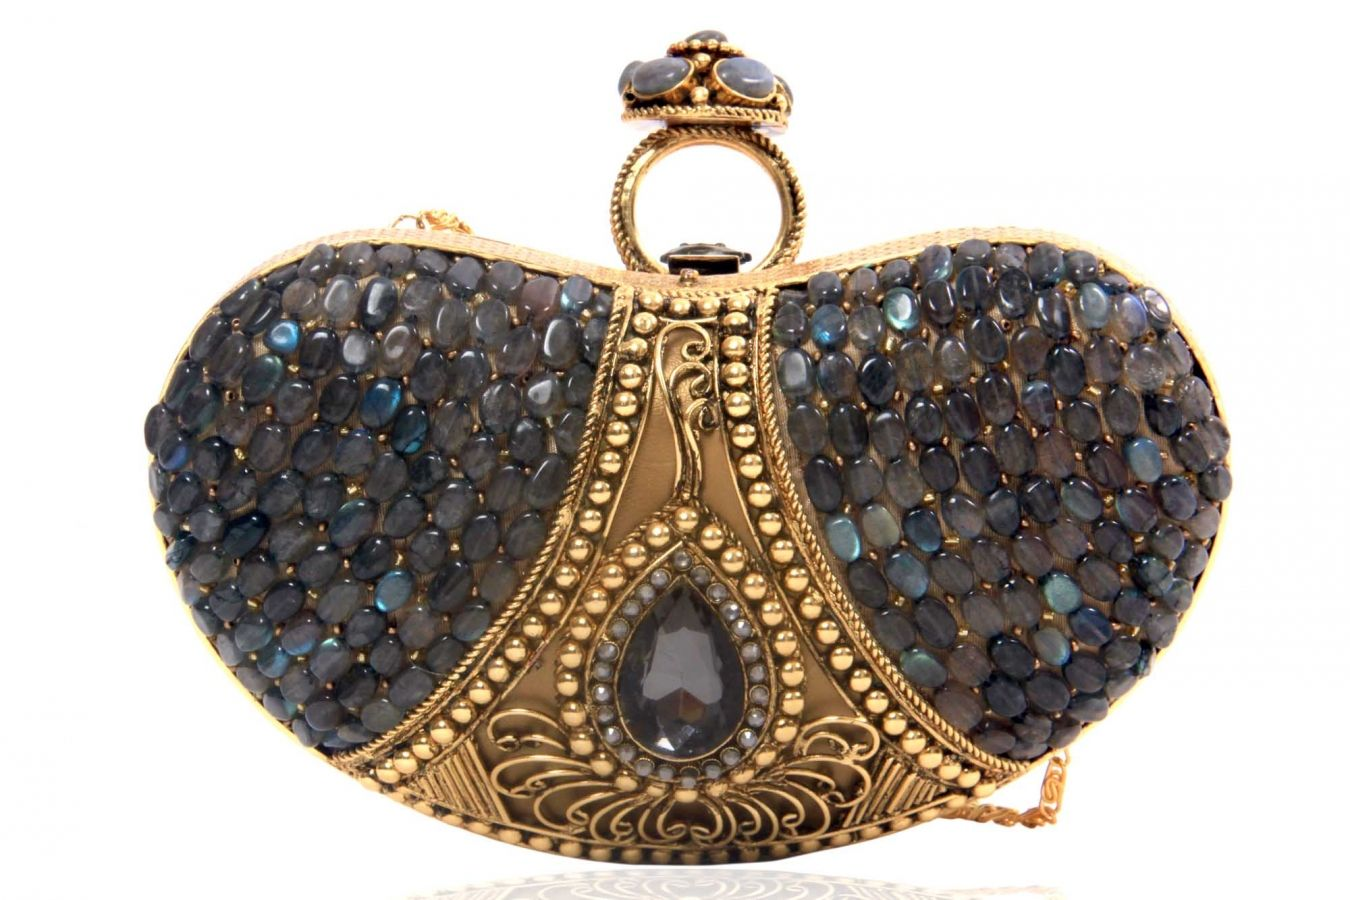 Accessorize Blossombox Jewelry with this exquisite purse--Ringed Indian Designer Clutch